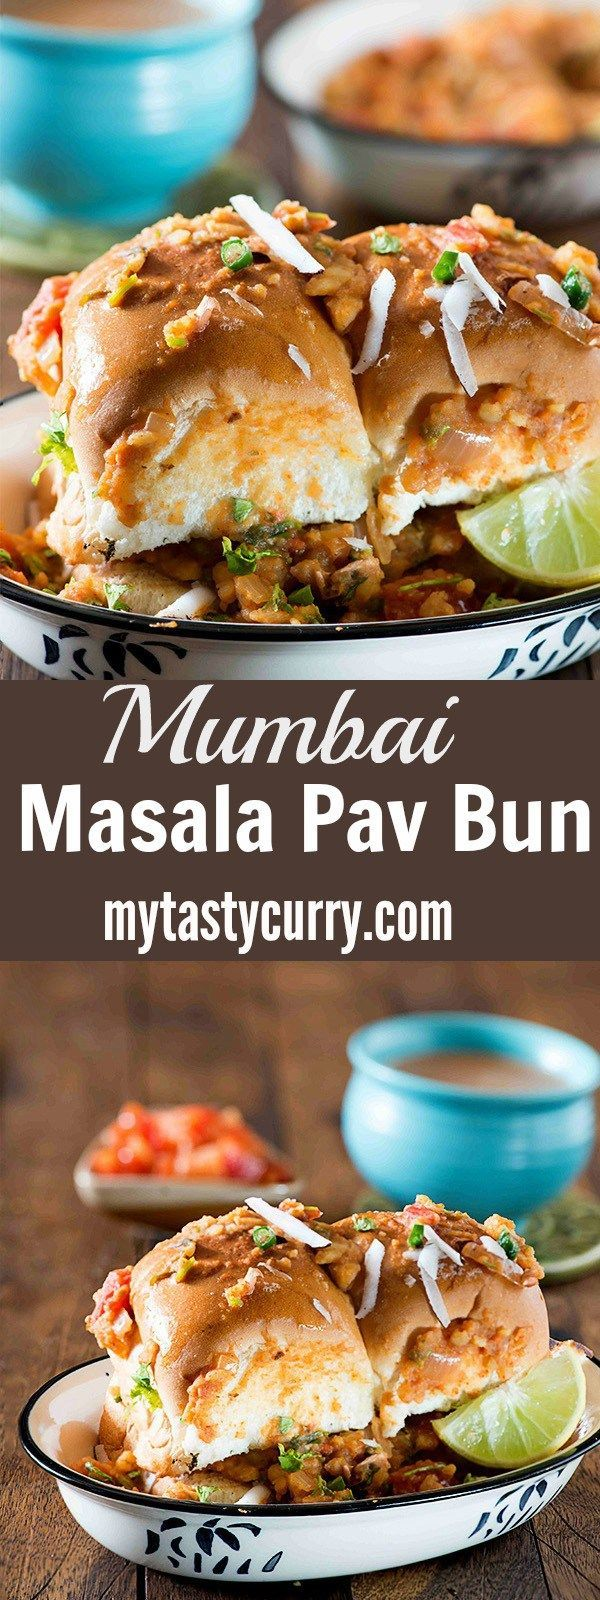 Mumbai Masala Pav is spicy and very filling street side food from Mumbai. Soft buttery pav bun is stuffed with spicy masala gravy slathered in a spicy masala and is served with a generous sprinkle of coriander leaves and fresh coconut. Extra toppings of cheese make it even more special. There are many versions of masala Pav, in some version a masala of onion, tomatoes, and capsicum is made for the stuffing of masala pav and in some versions, boiled potato is added to the masala it.